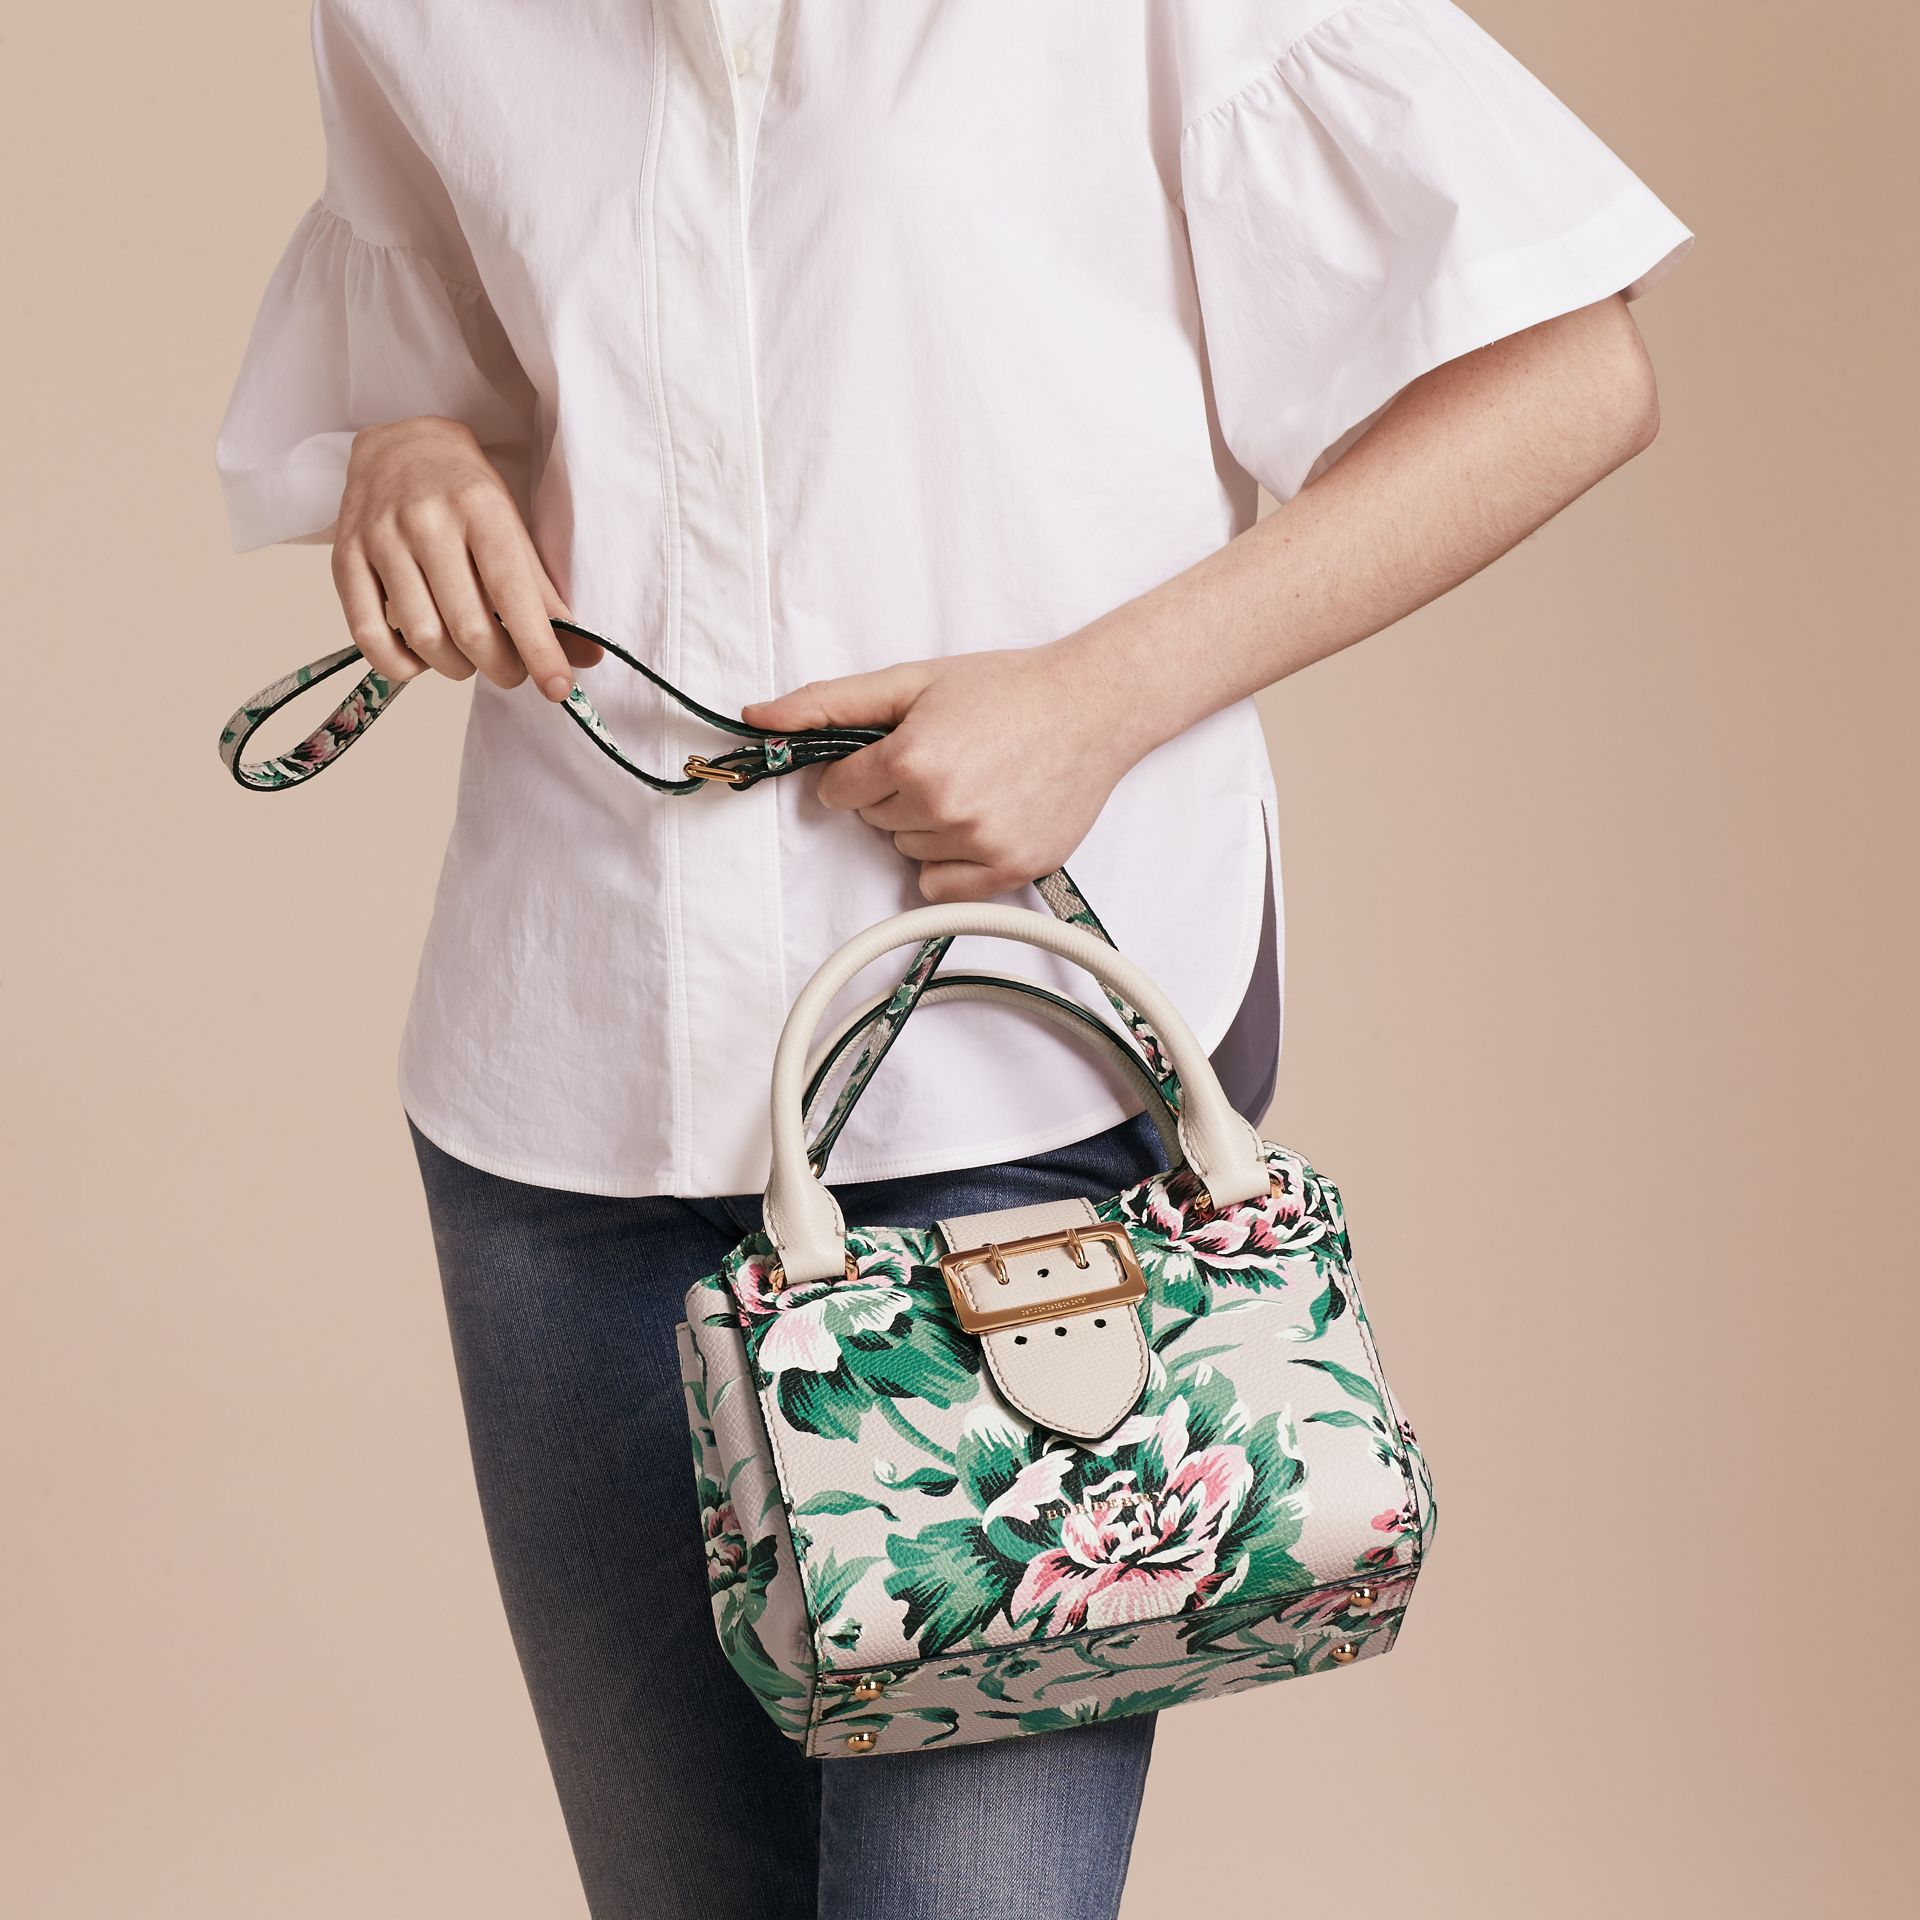 Natural/emerald green The Small Buckle Tote in Peony Rose Print Leather Natural/emerald Green - gallery image 4